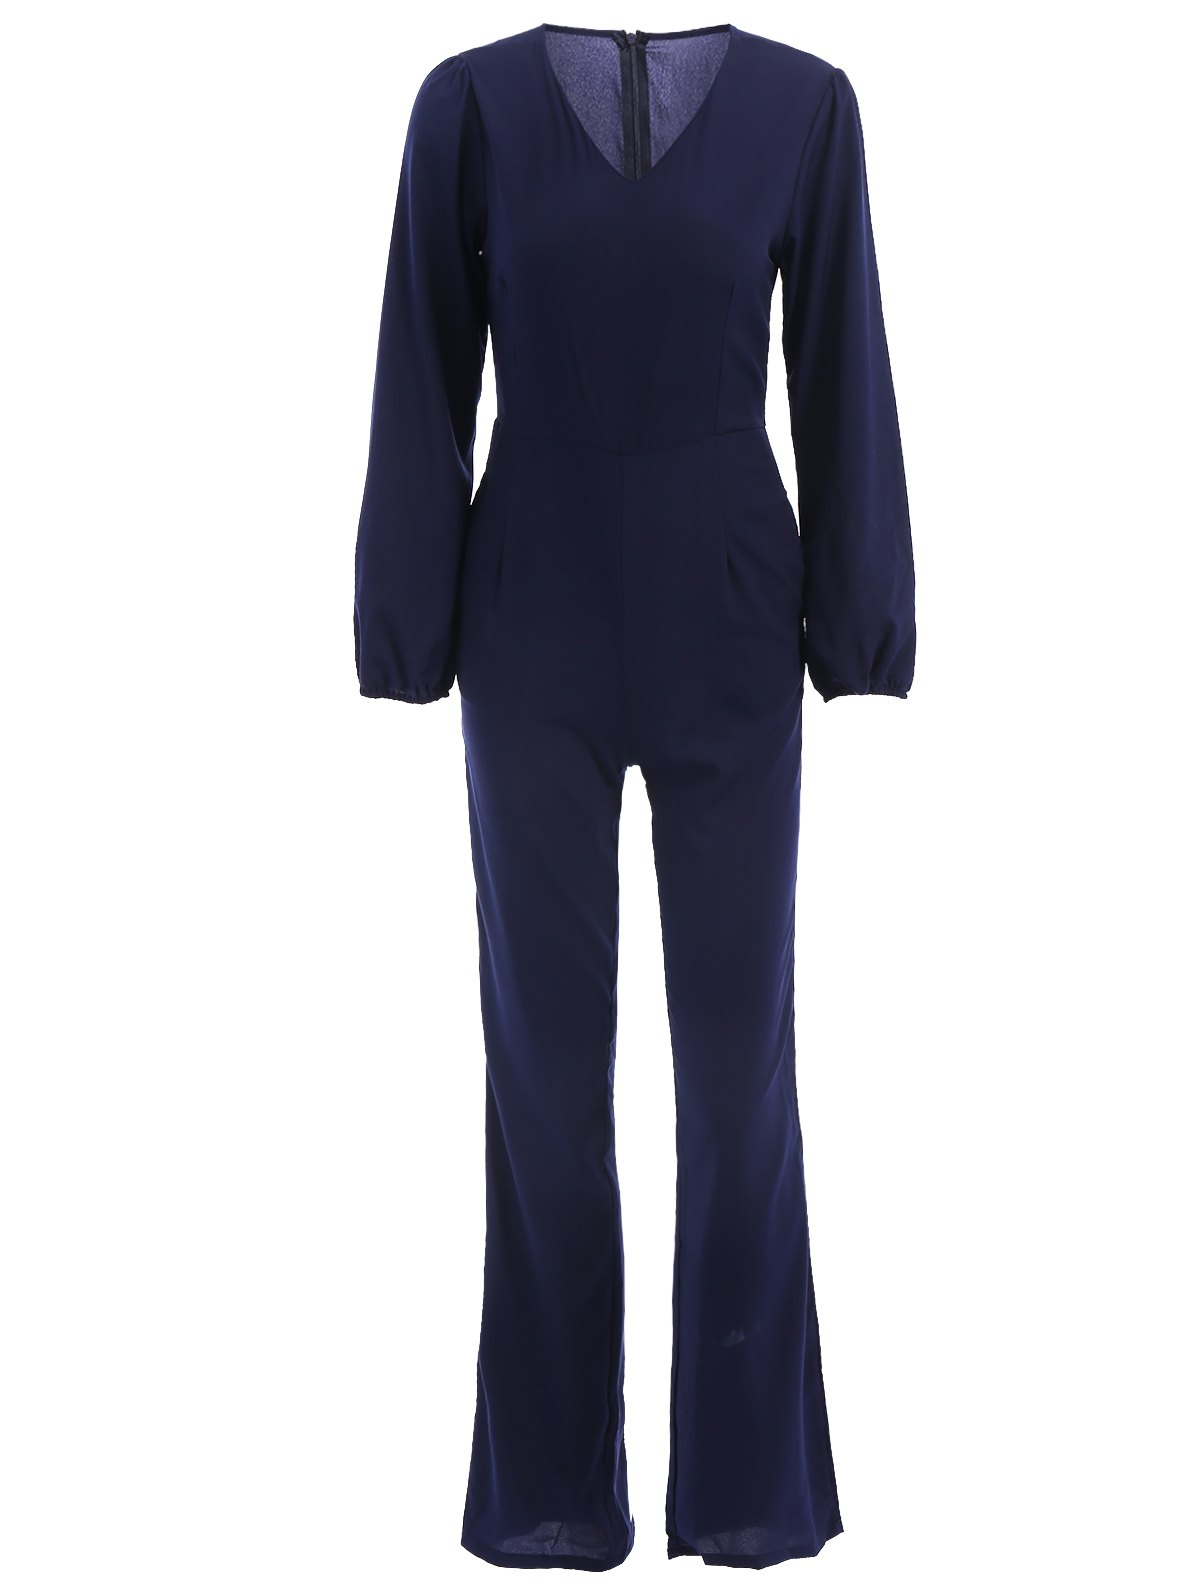 Stylish V-Neck Long Sleeve Loose-Fitting Solid Color Women's Jumpsuit - DEEP BLUE M